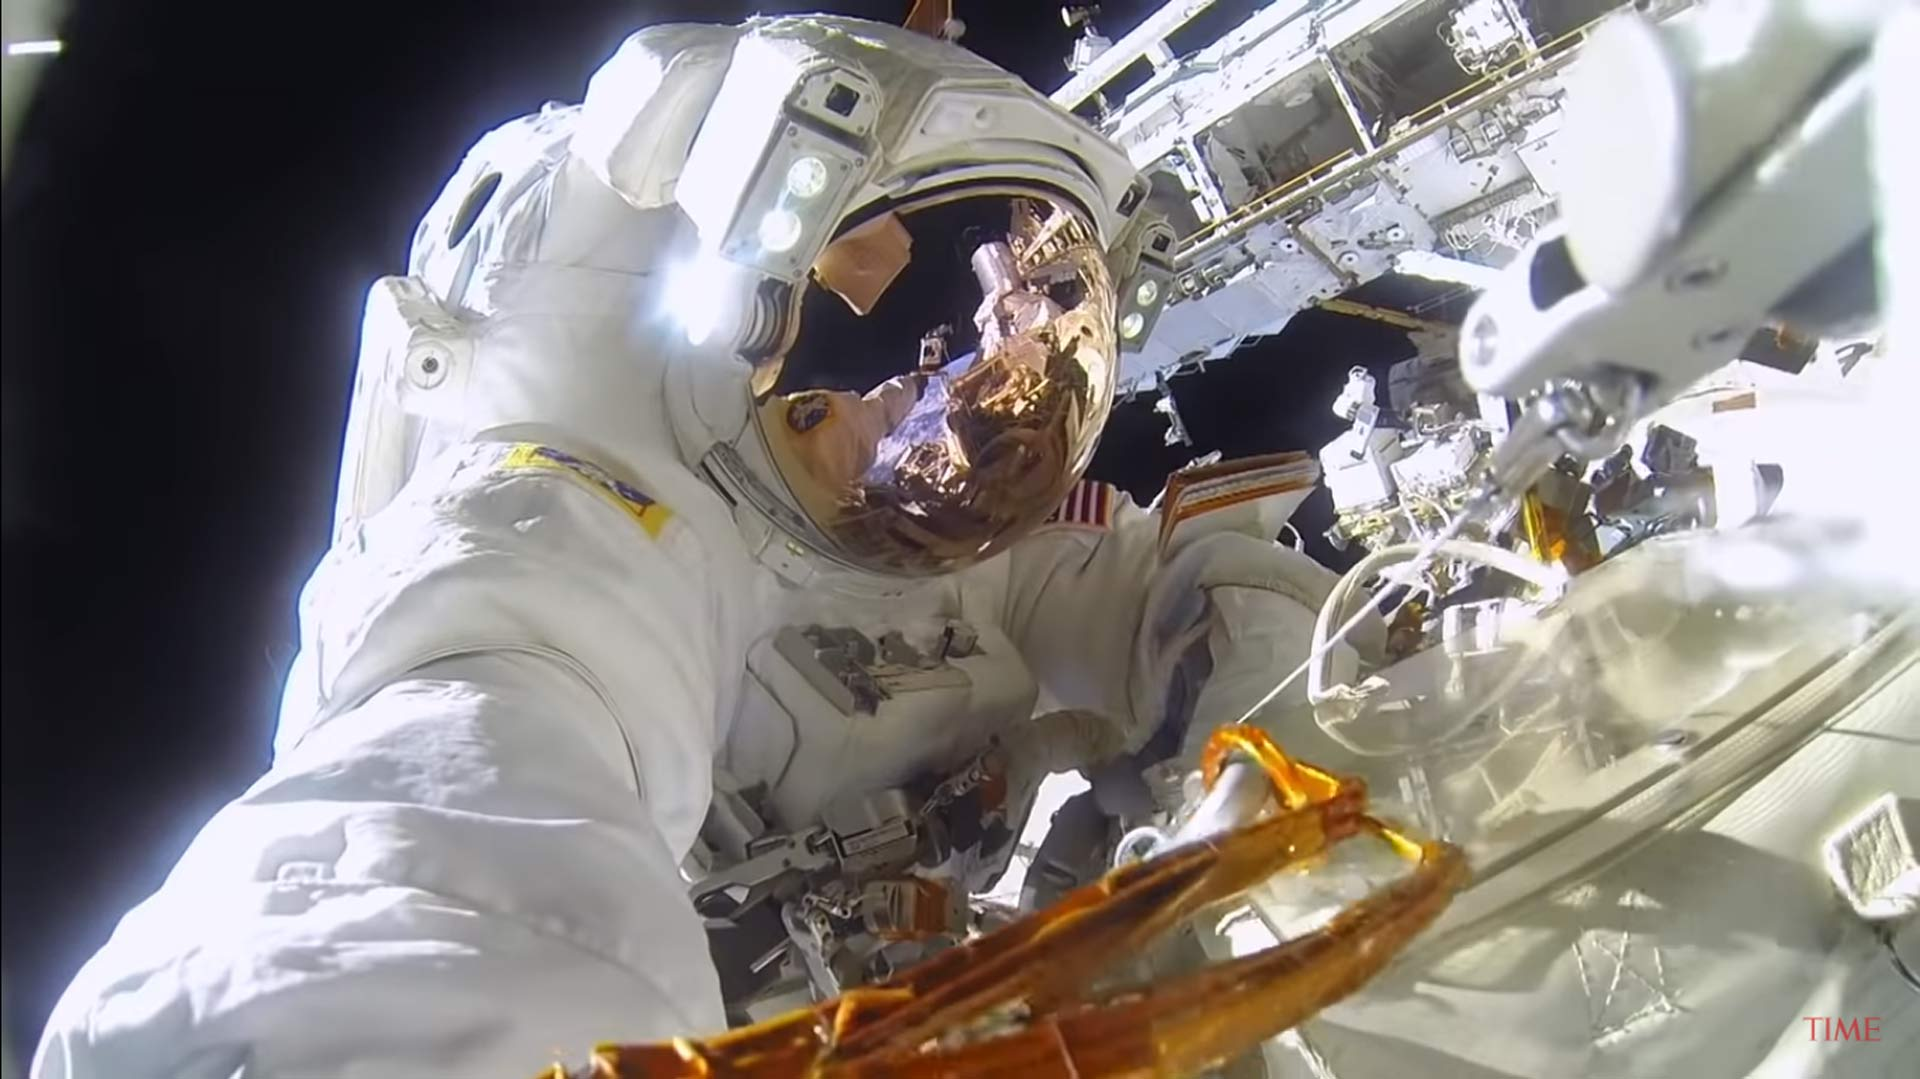 VR Cameras Now on International Space Station to Capture Space Walks & Missions